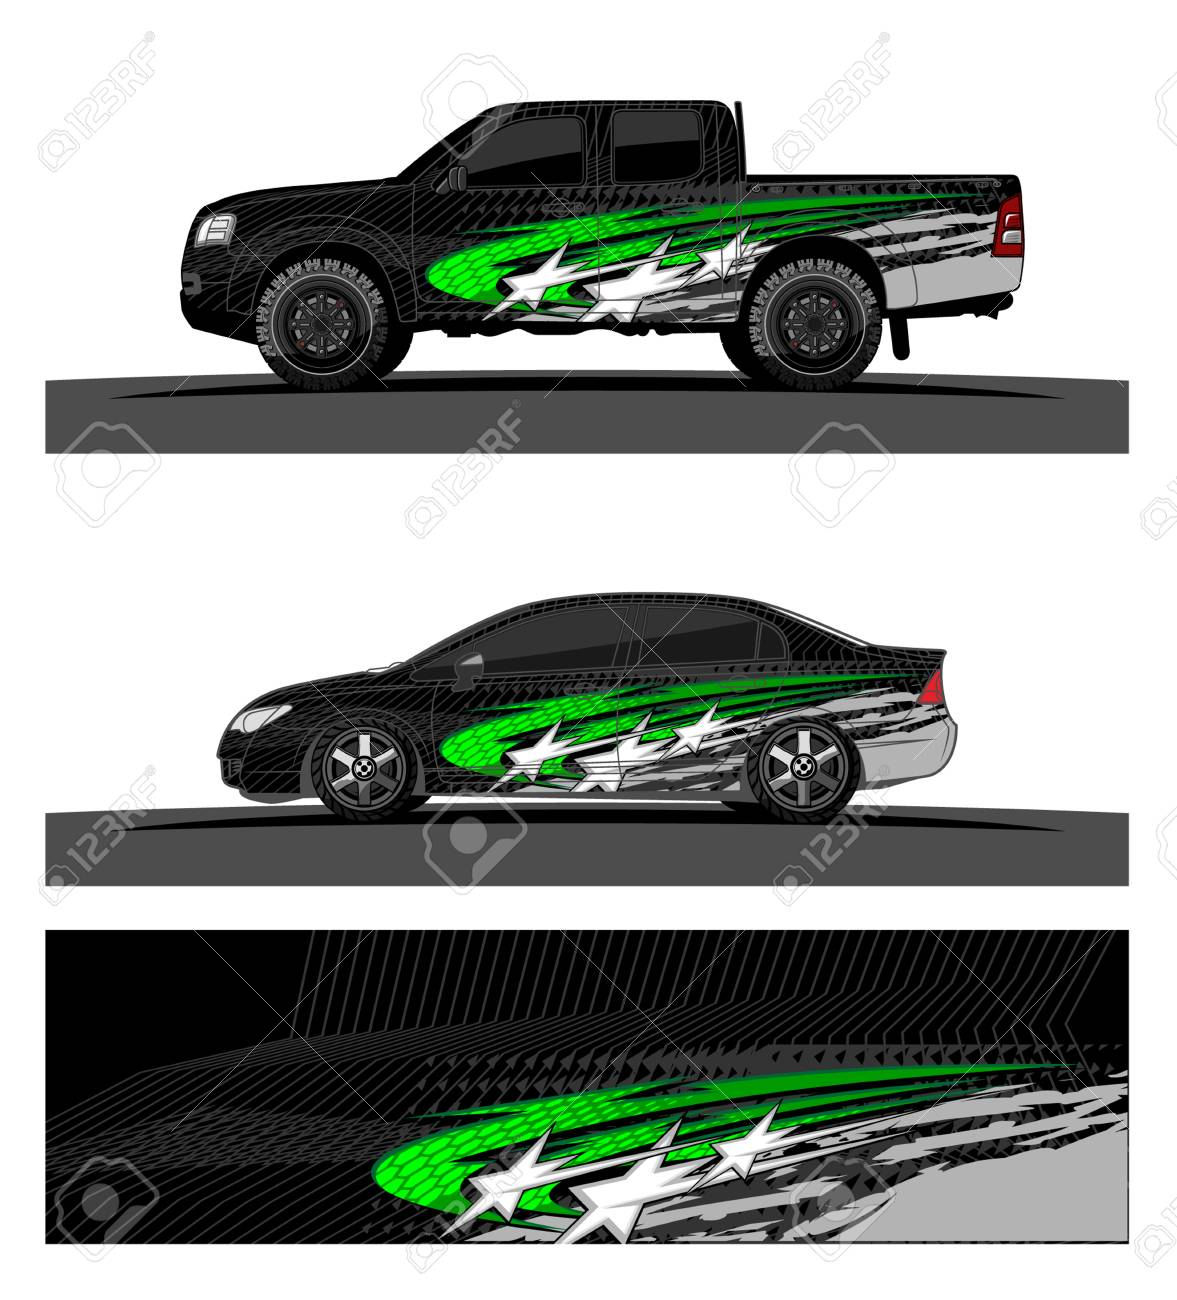 car livery Graphic vector  abstract racing shape design for vehicle